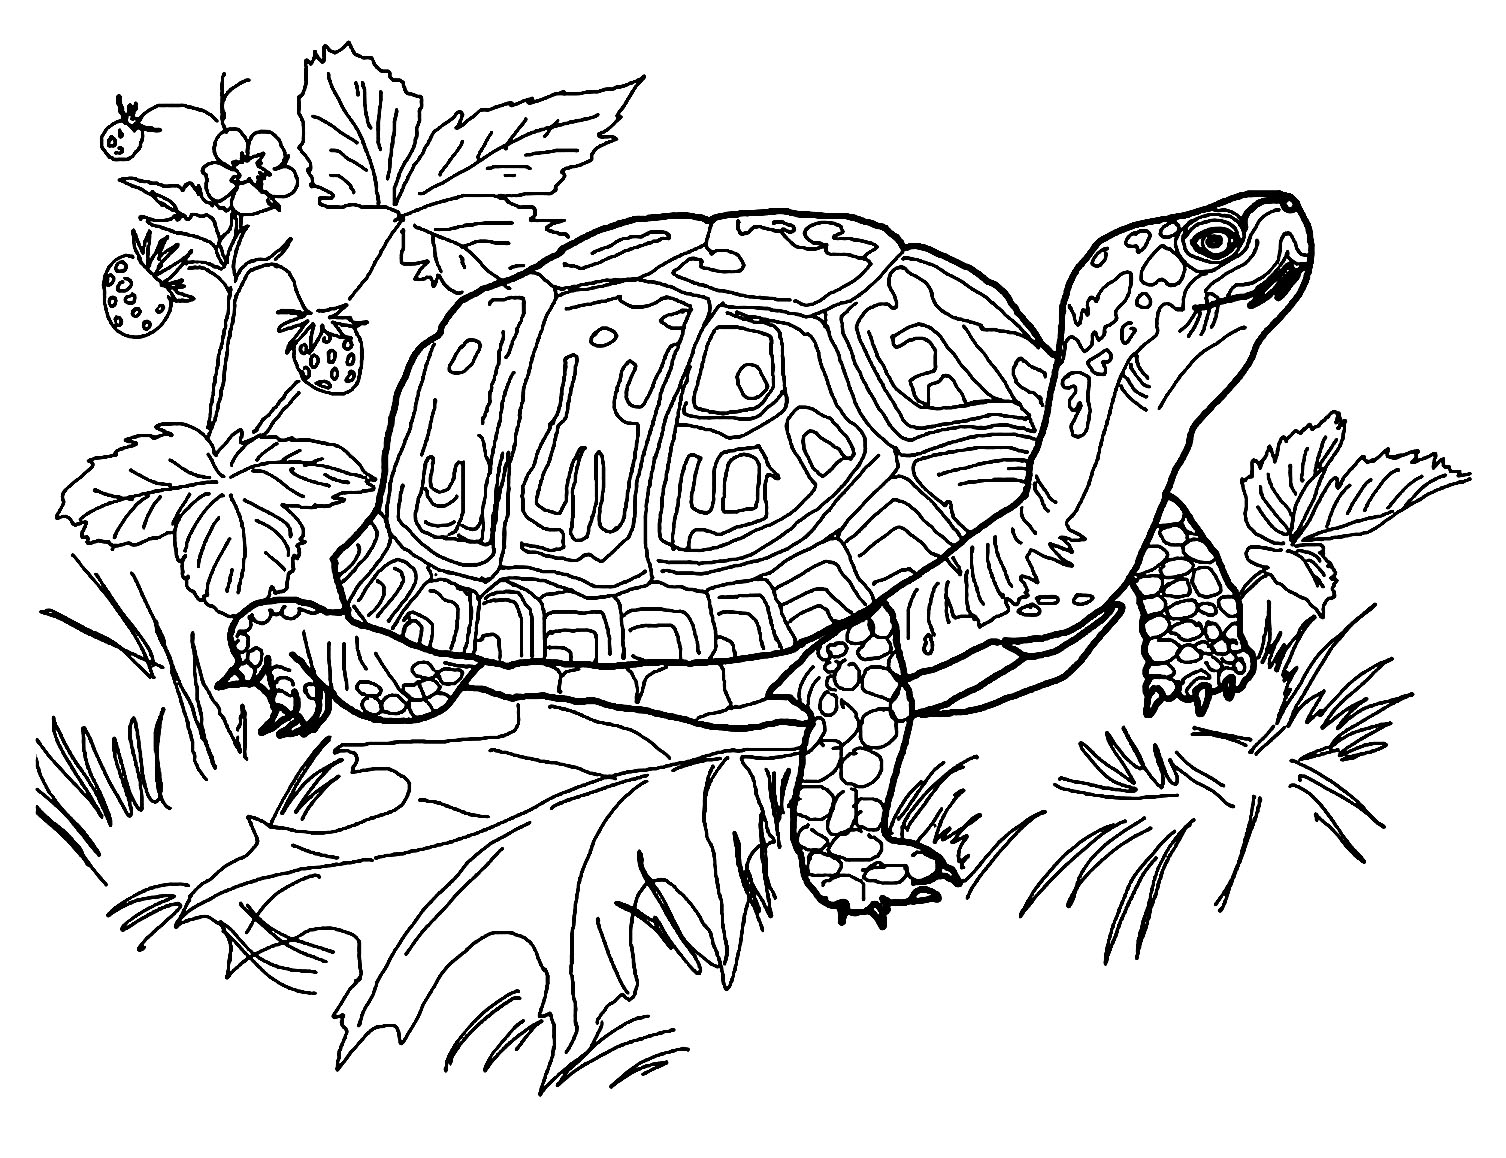 Turtles to download - Turtles Kids Coloring Pages